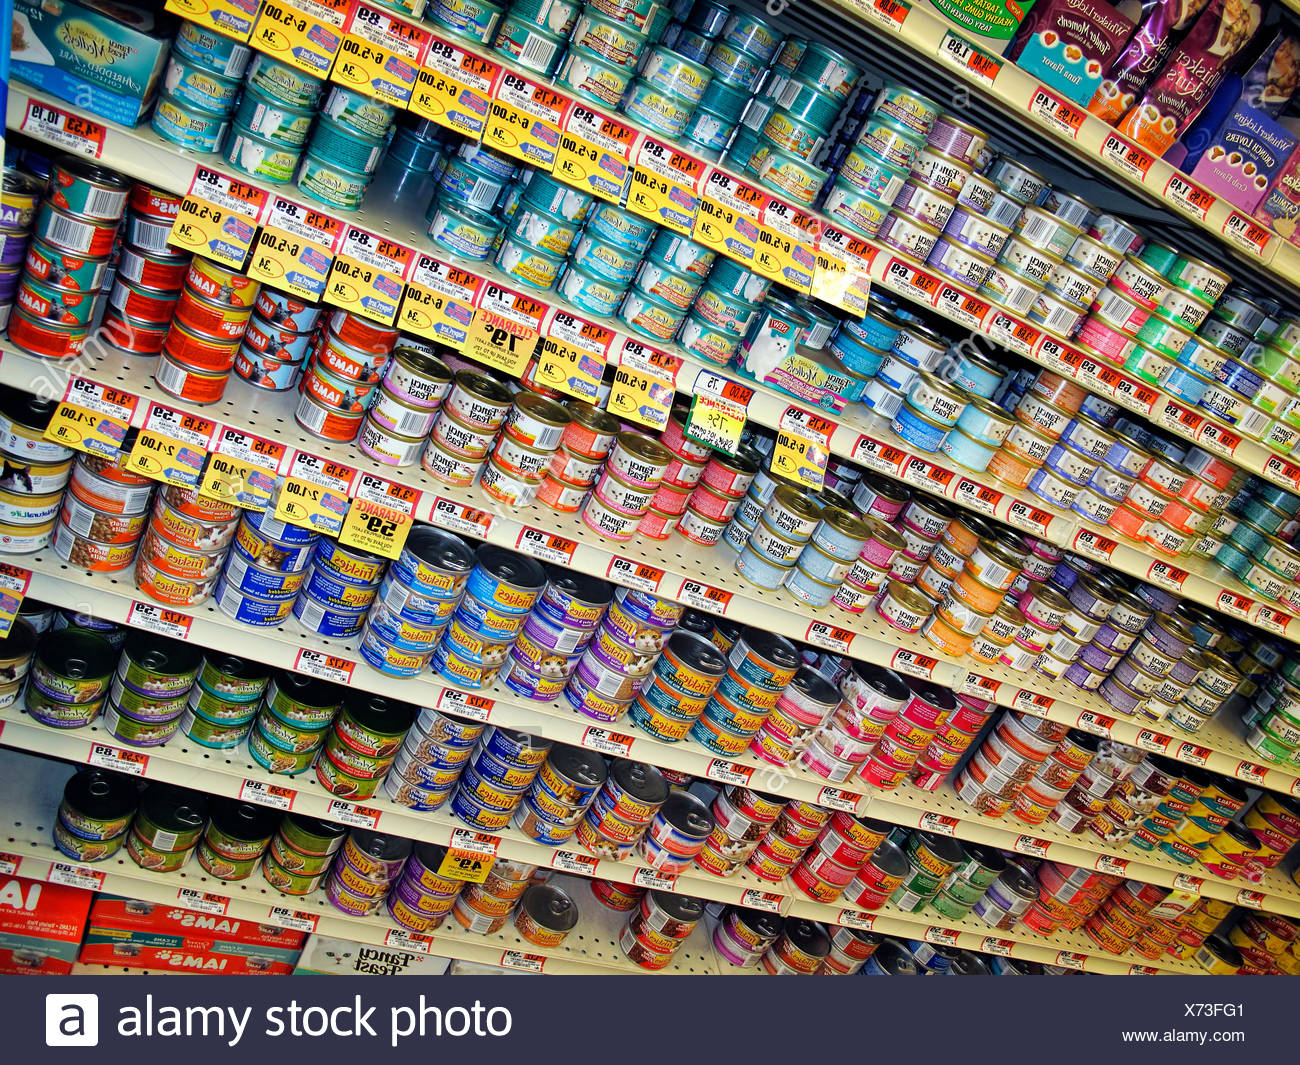 Tins of cat food in a grocery store. - Stock Image